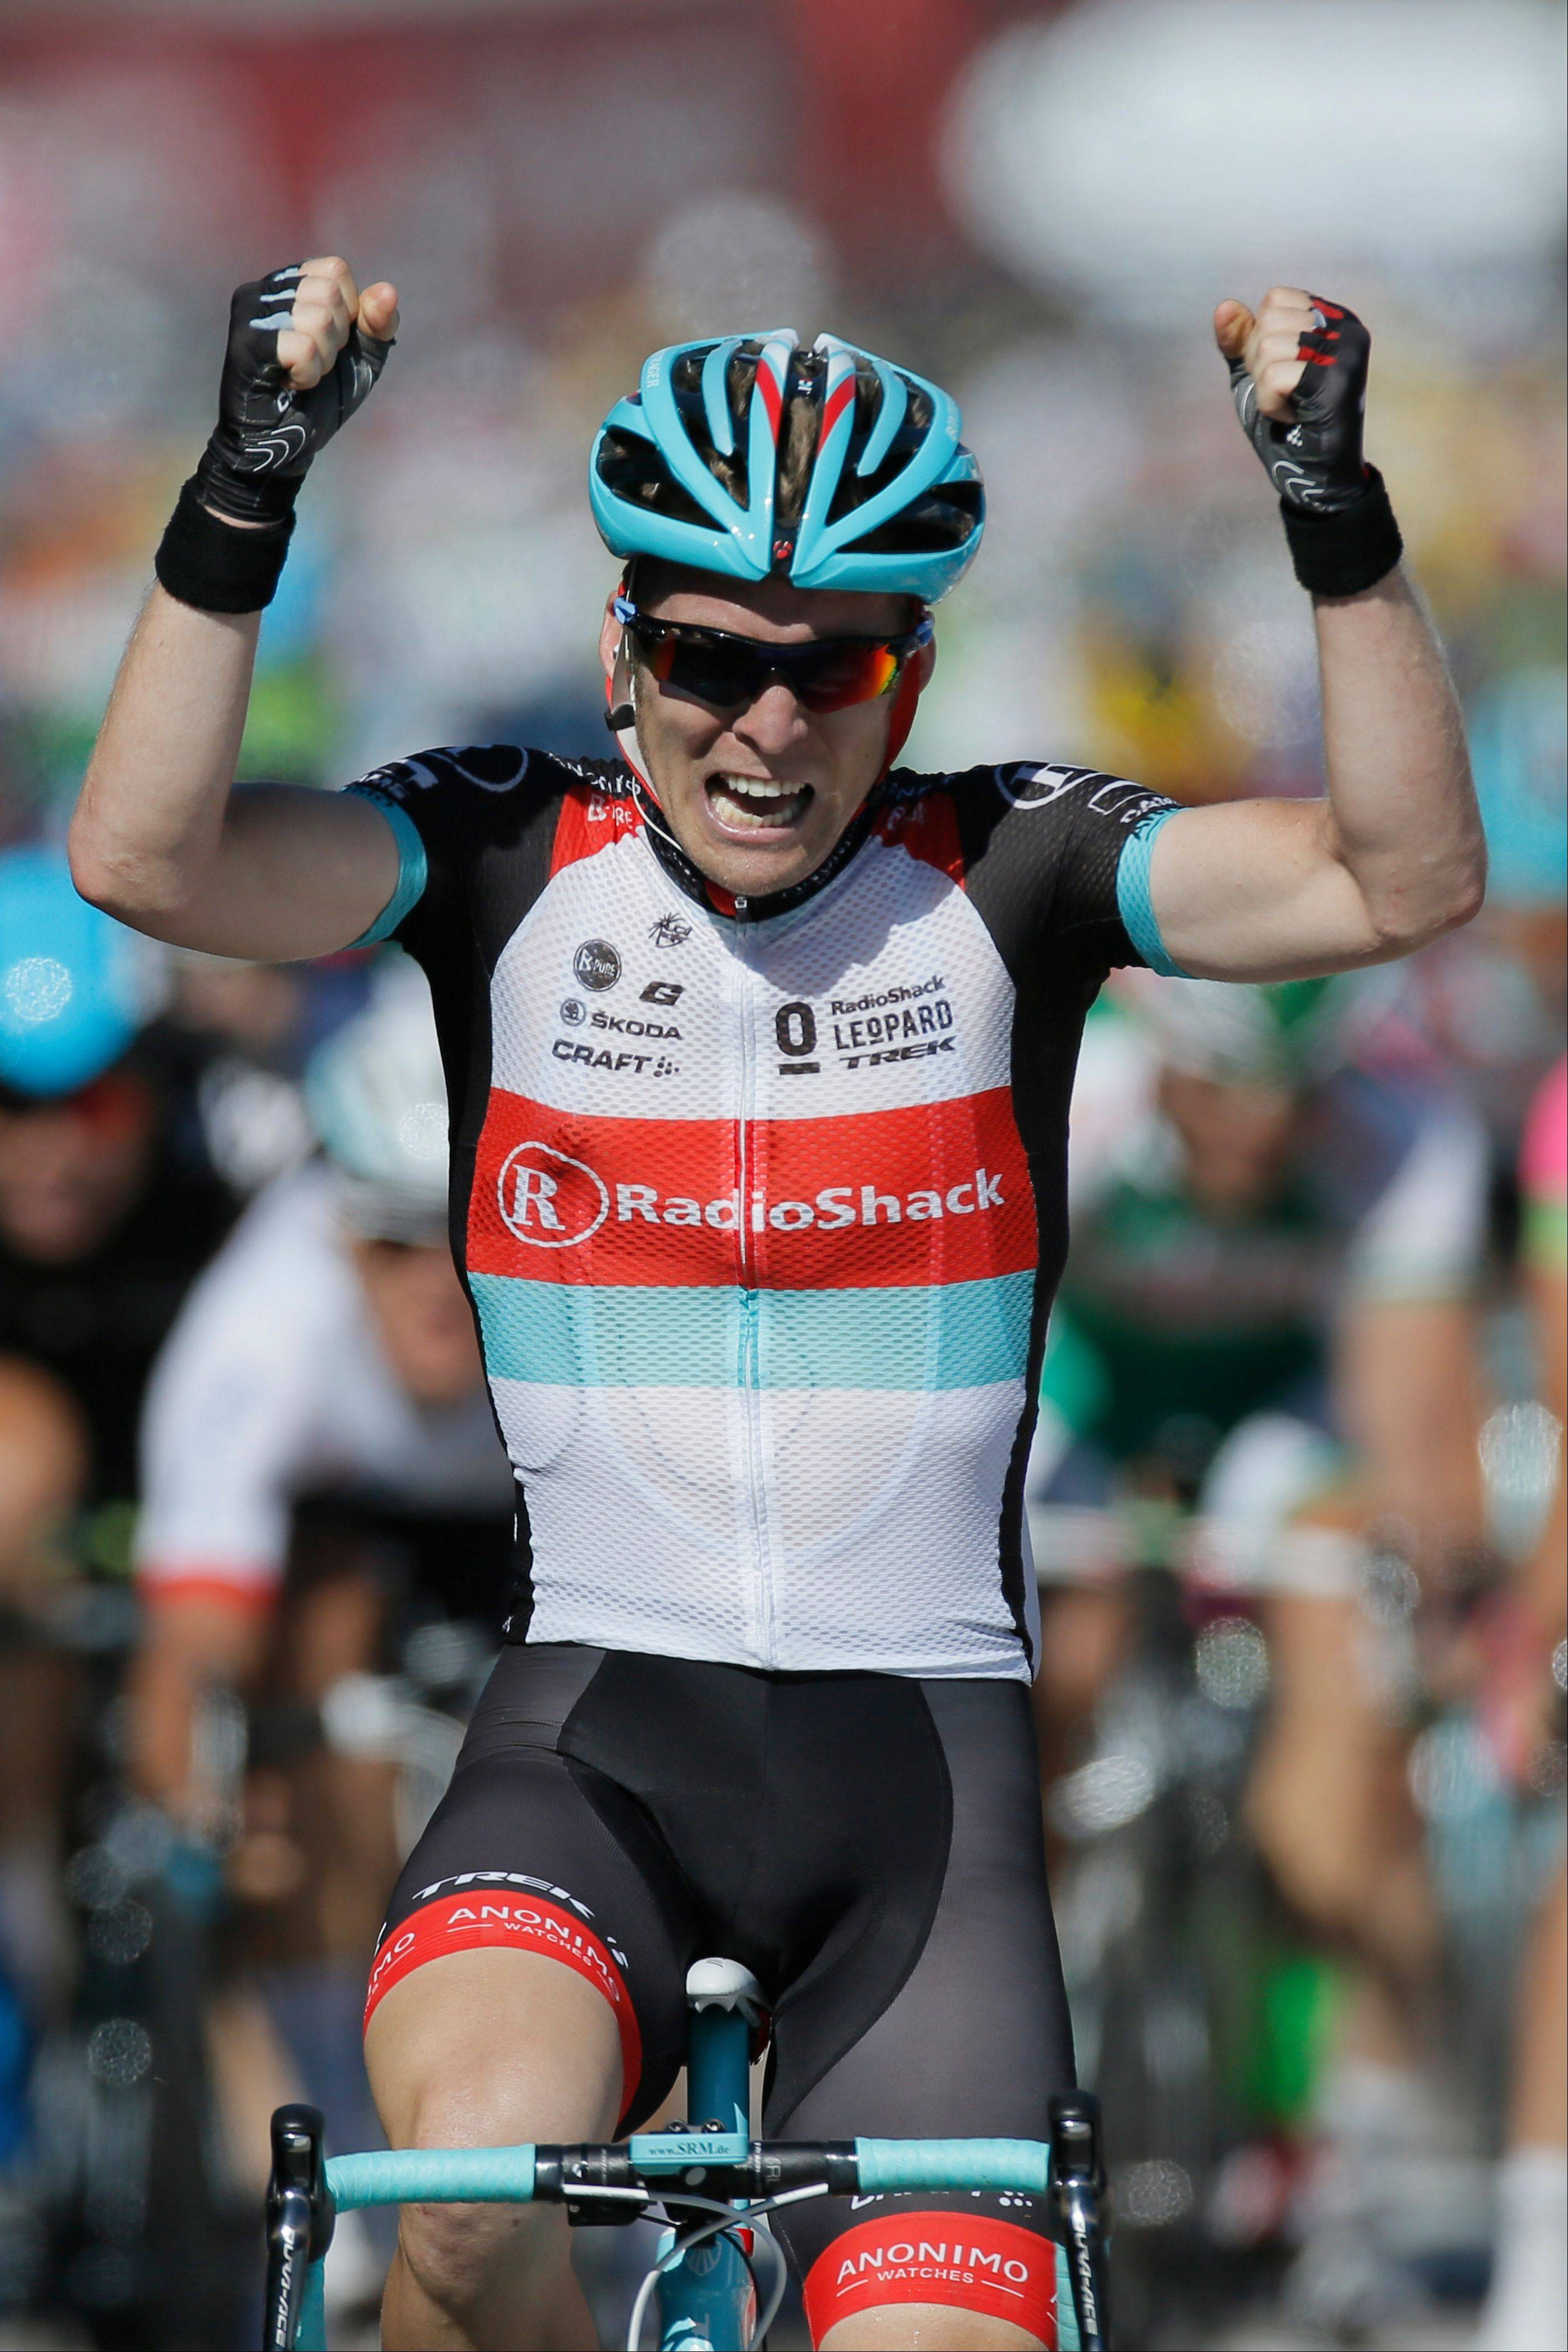 Jan Bakelants of Belgium crosses the finish line Sunday to win the second stage of the Tour de France in Ajaccio, Corsica.